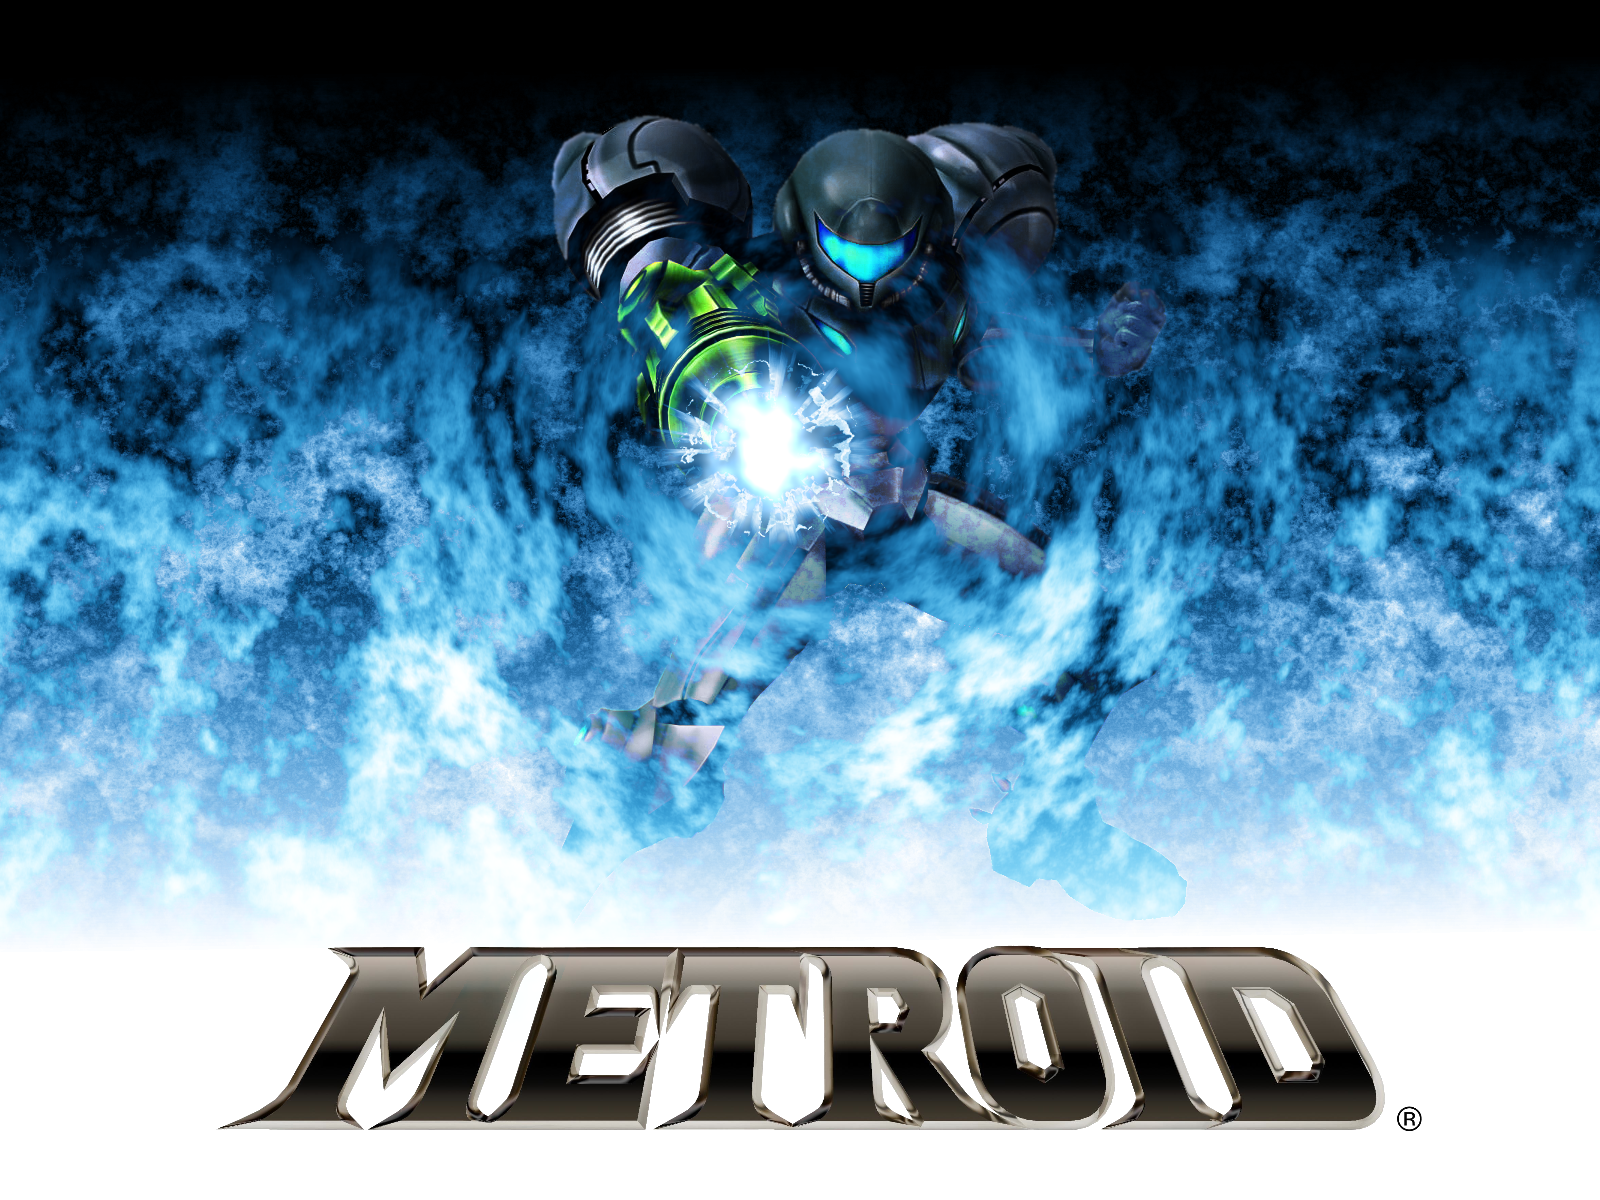 Blue Flames Metroid Wallpaper By Kironohasama on atom wallpaper